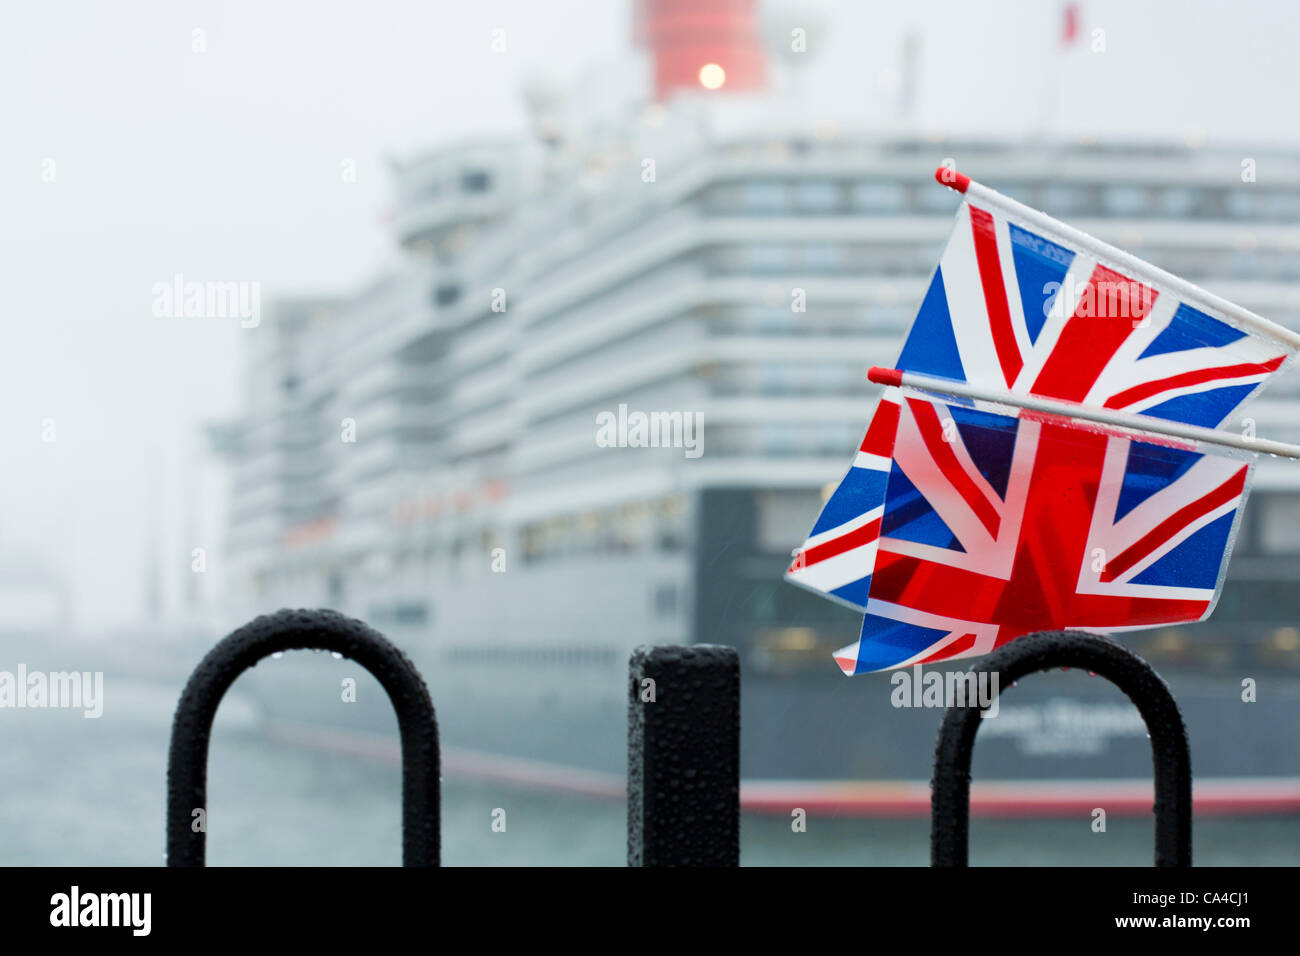 SOUTHAMPTON, UK, 5th June 2012. Spectators with union jack flags view the Queen Elizabeth cruise liner during the - Stock Image